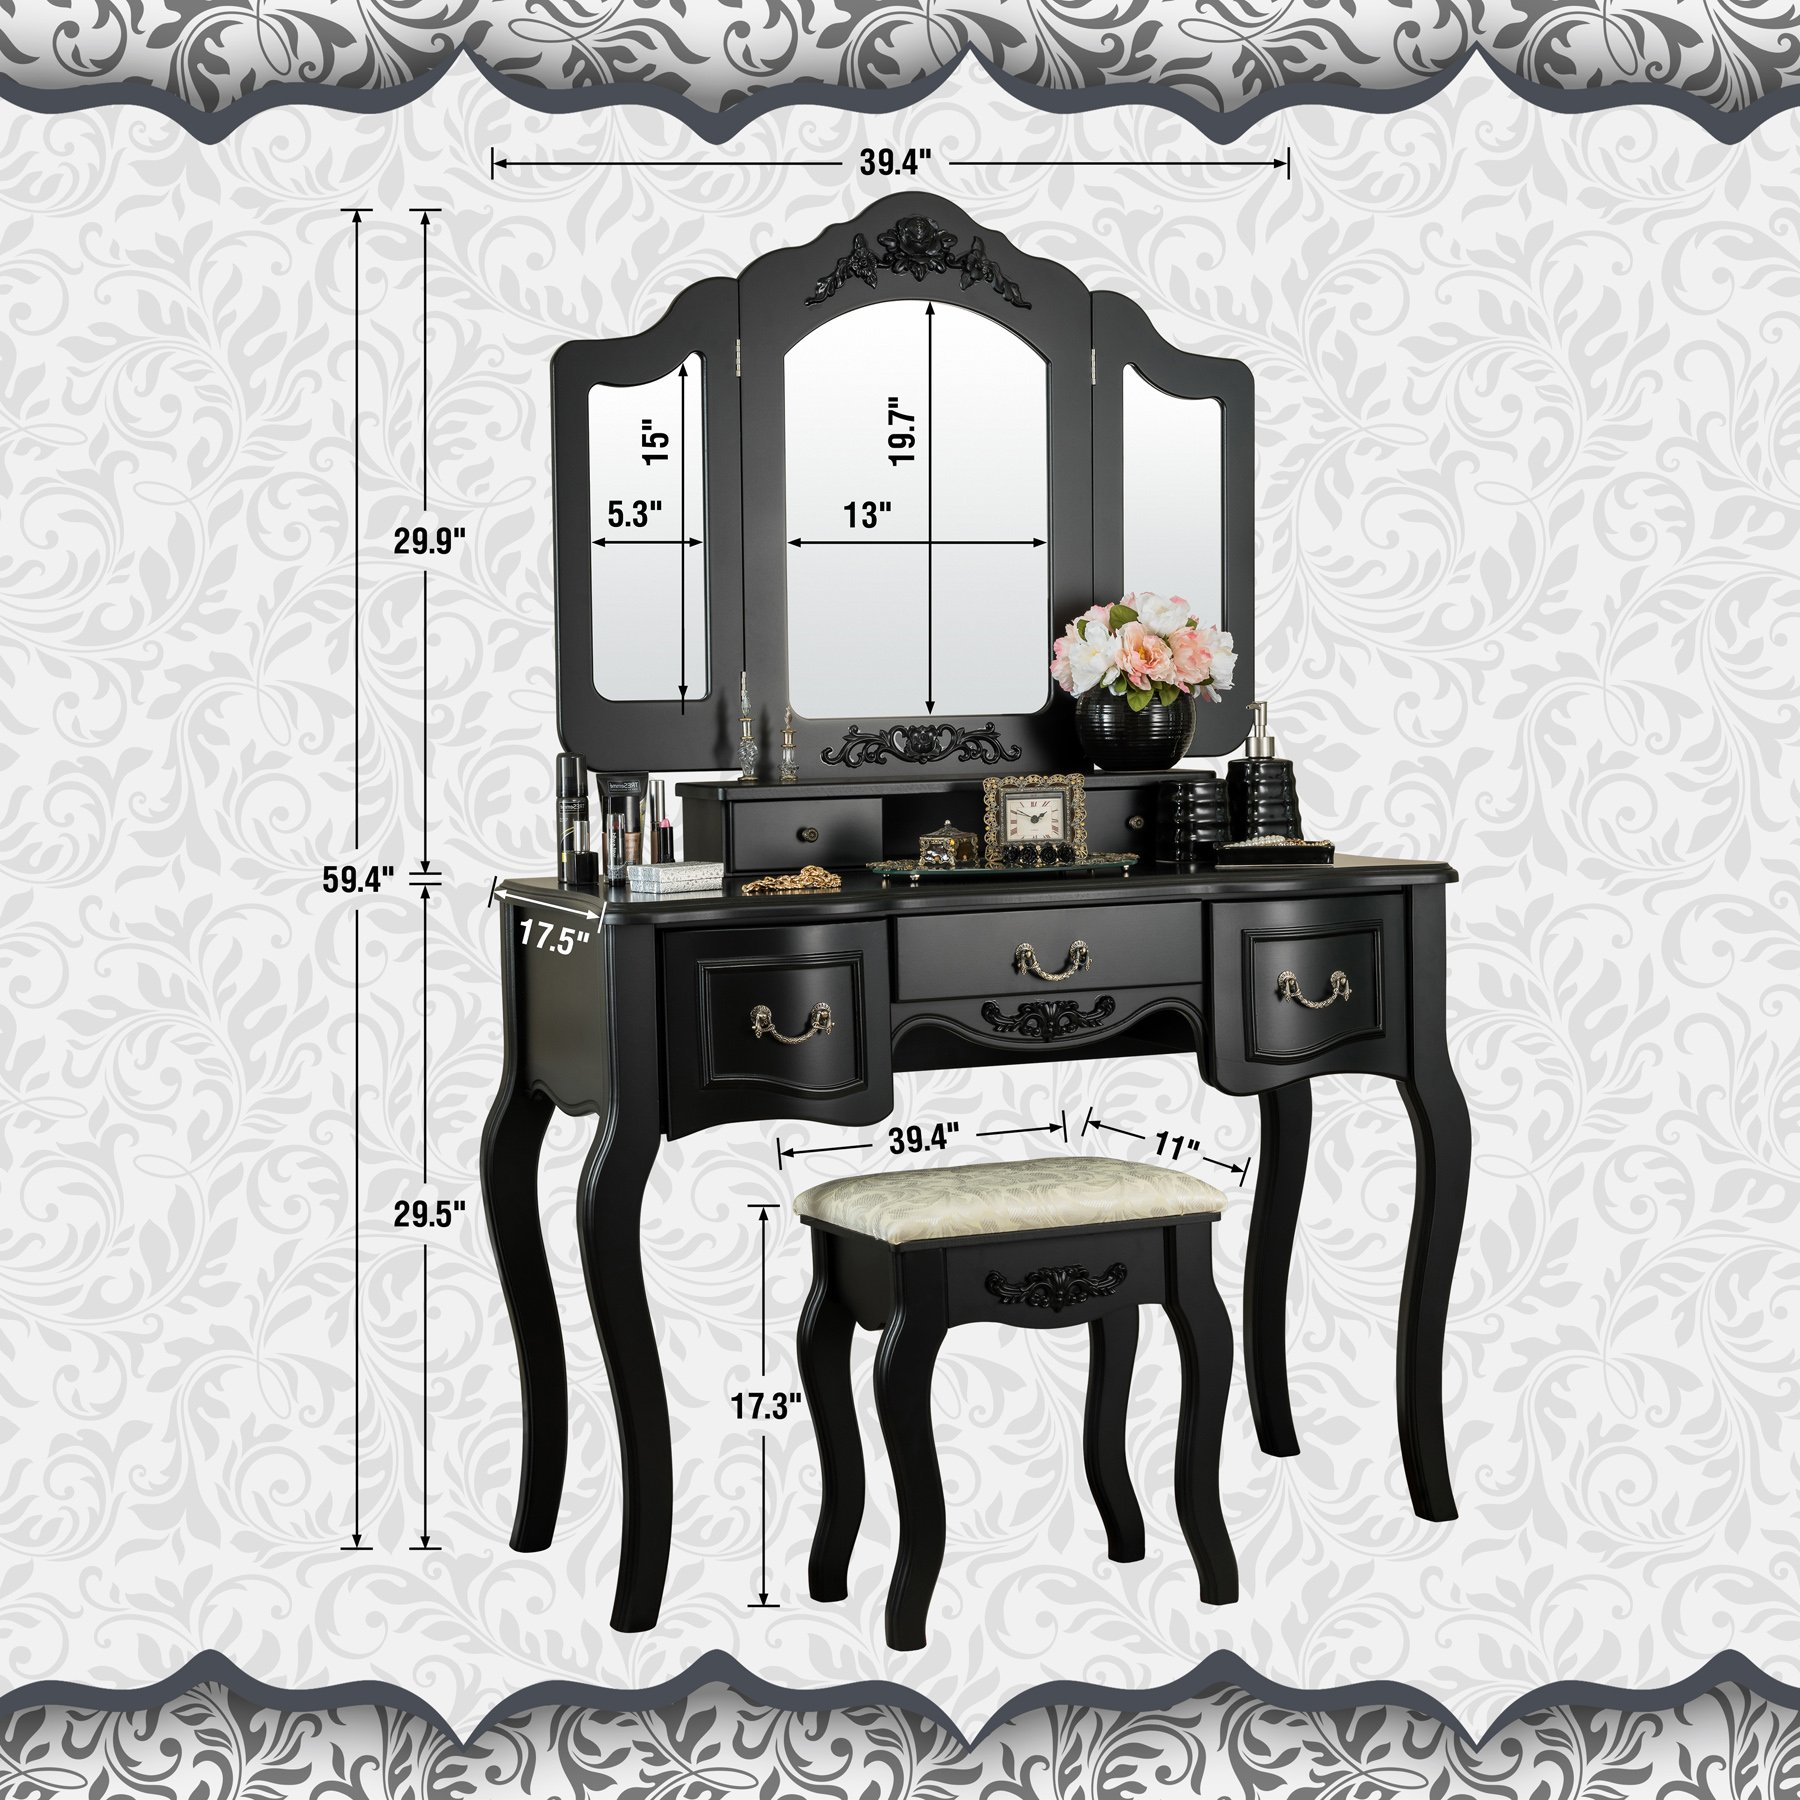 Fineboard CFB-VT04-BK Vanity Beauty Station Makeup Table and Wooden Stool 3 Mirrors and 5 Organization DrawersSet, Black by Fineboard (Image #4)